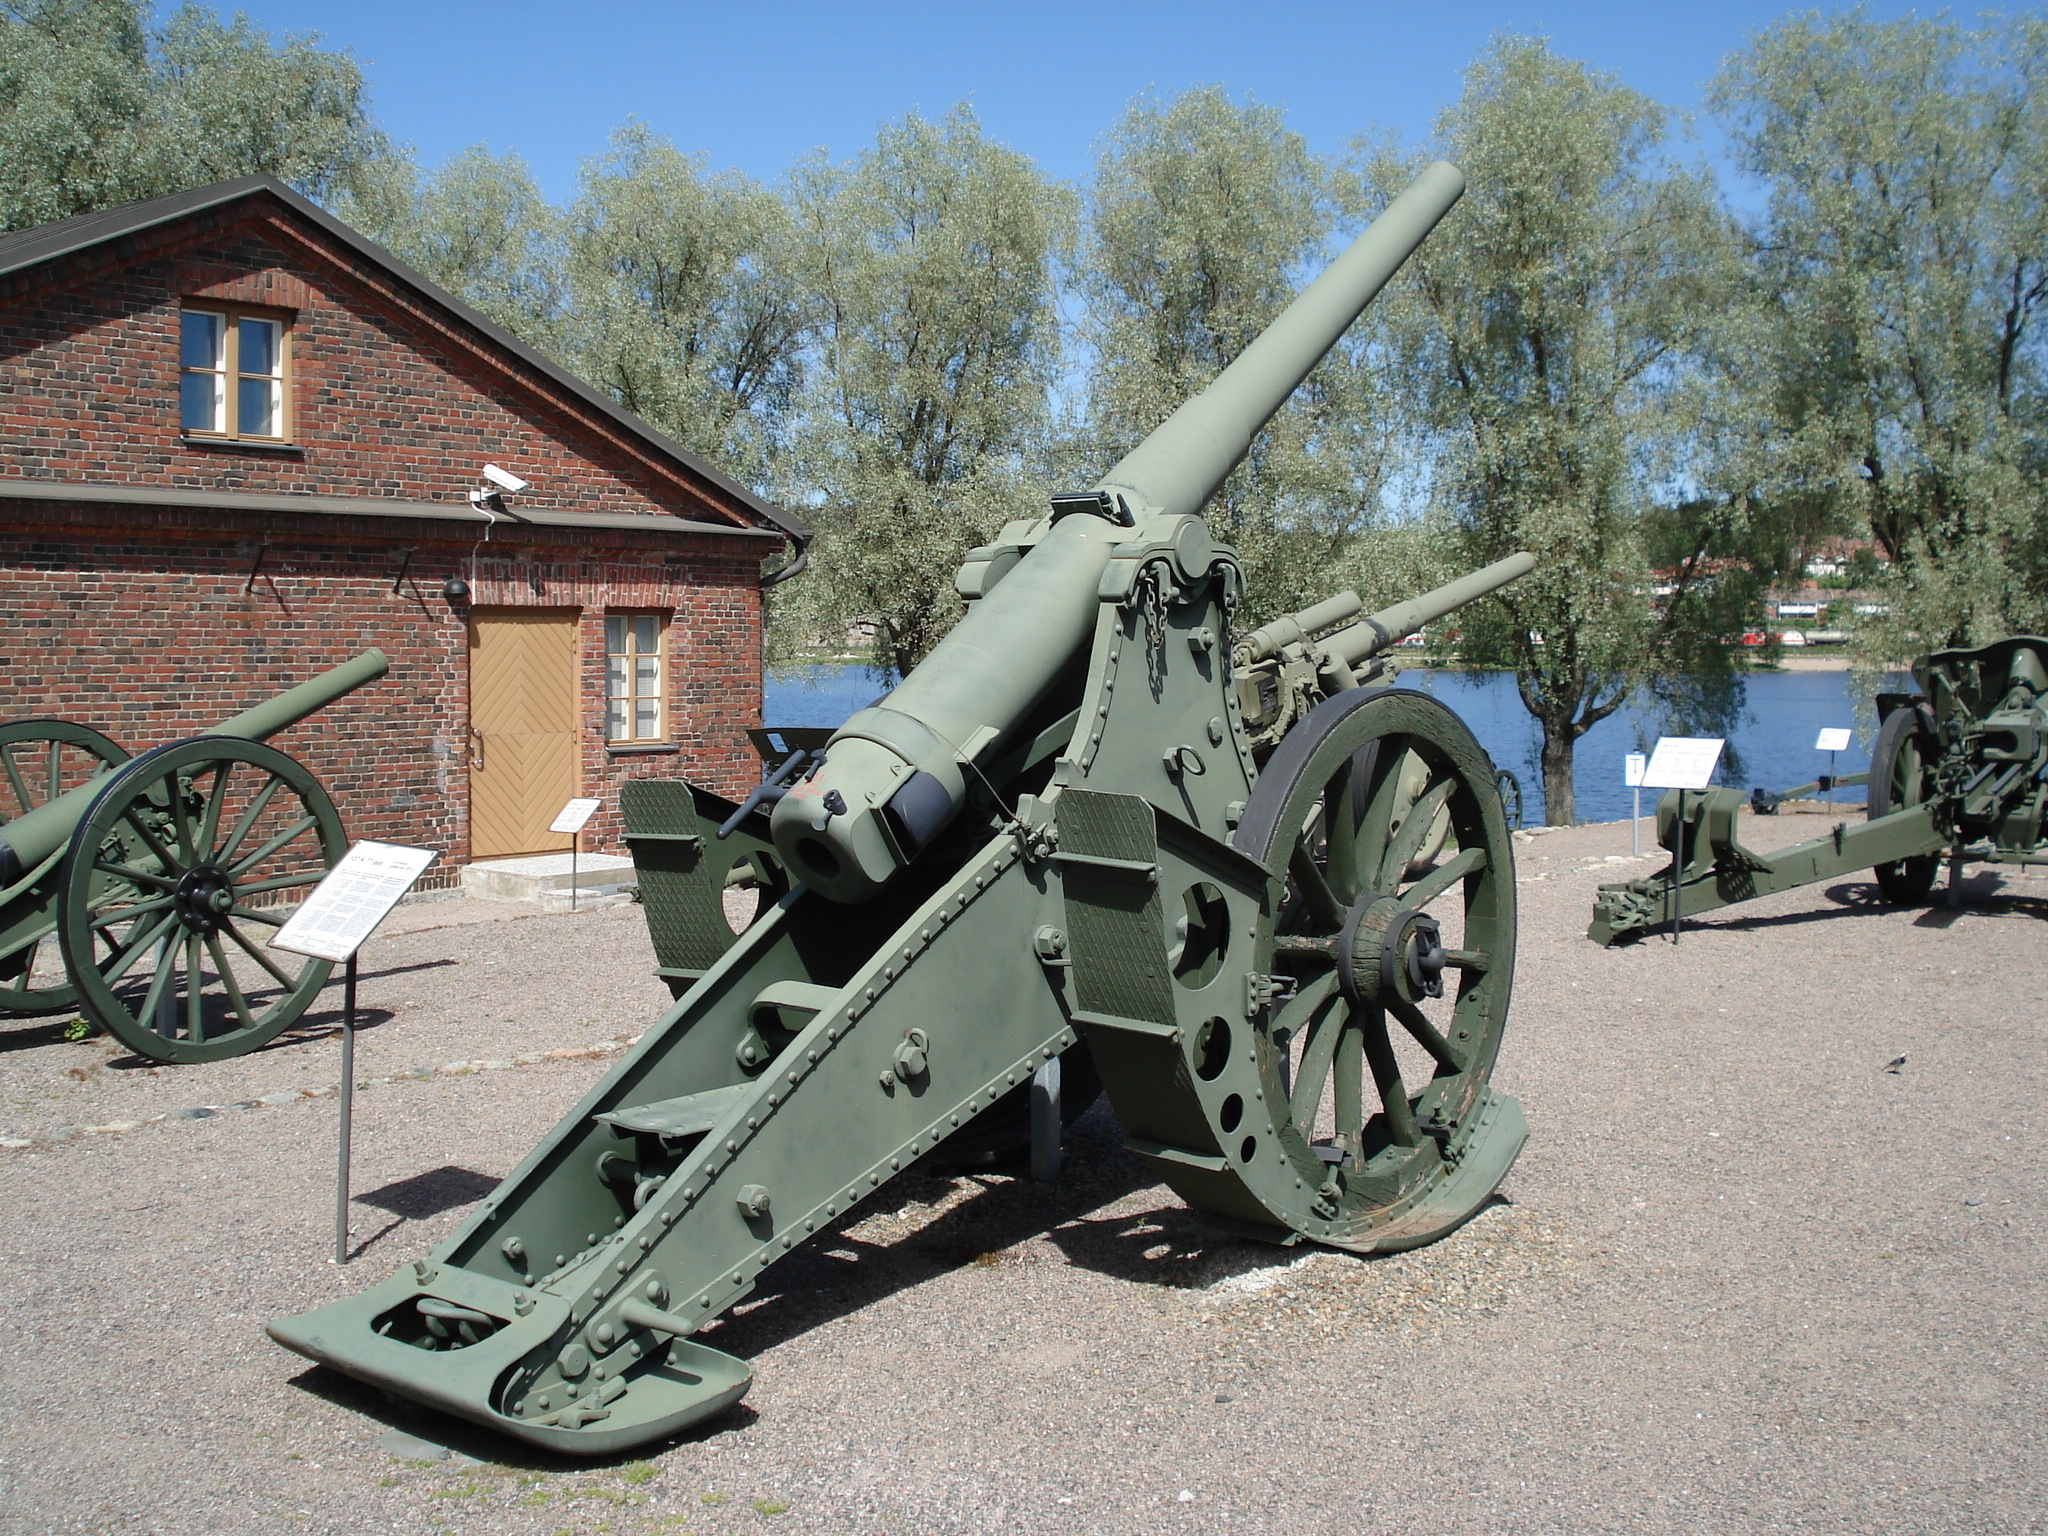 https://upload.wikimedia.org/wikipedia/commons/a/ad/Model_1877_107_mm_siege_gun_Hameenlinna.JPG?uselang=ru